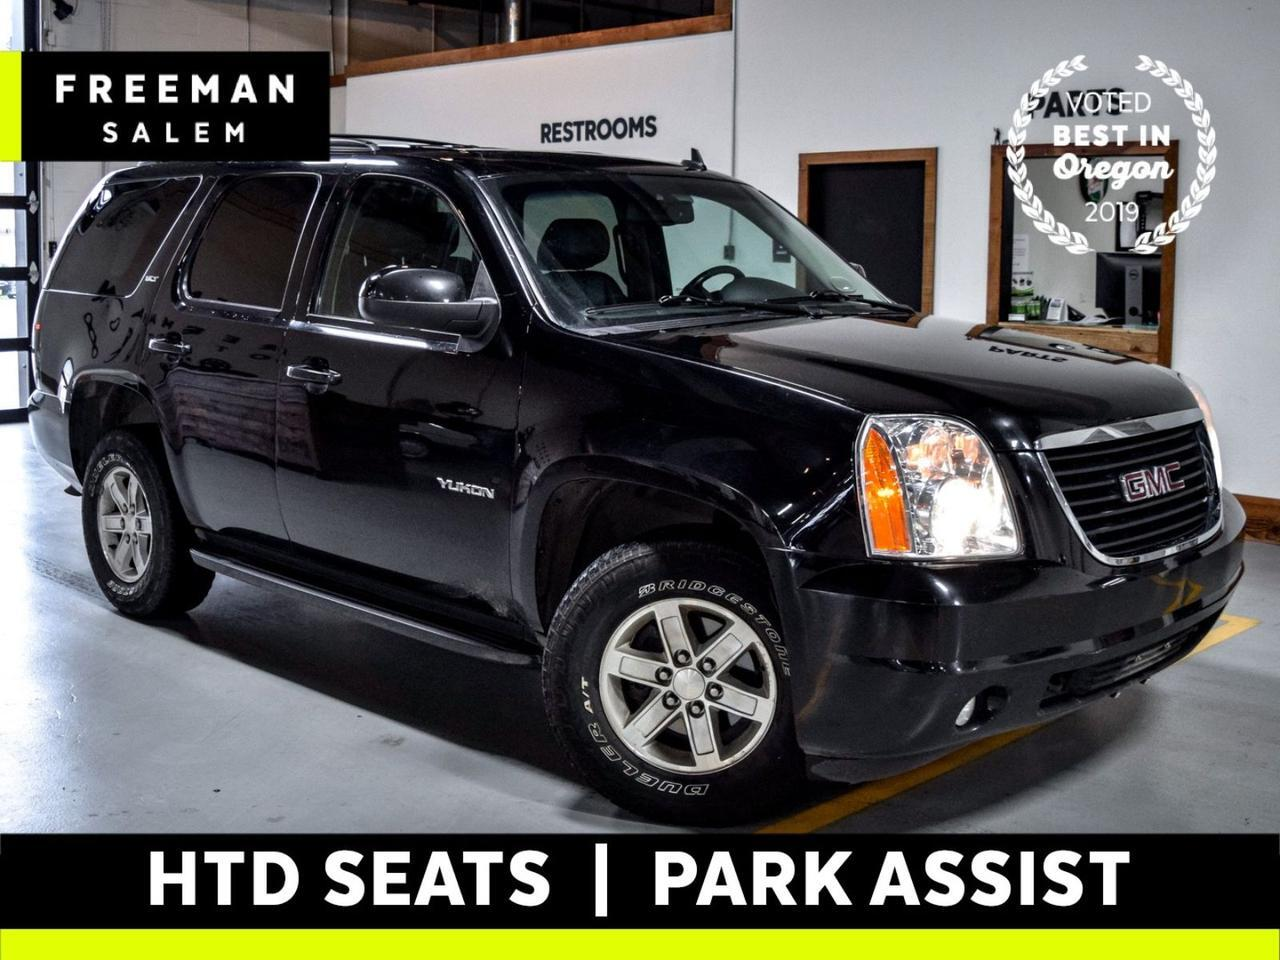 2013 GMC Yukon SLT 4WD Heated Seats Salem OR